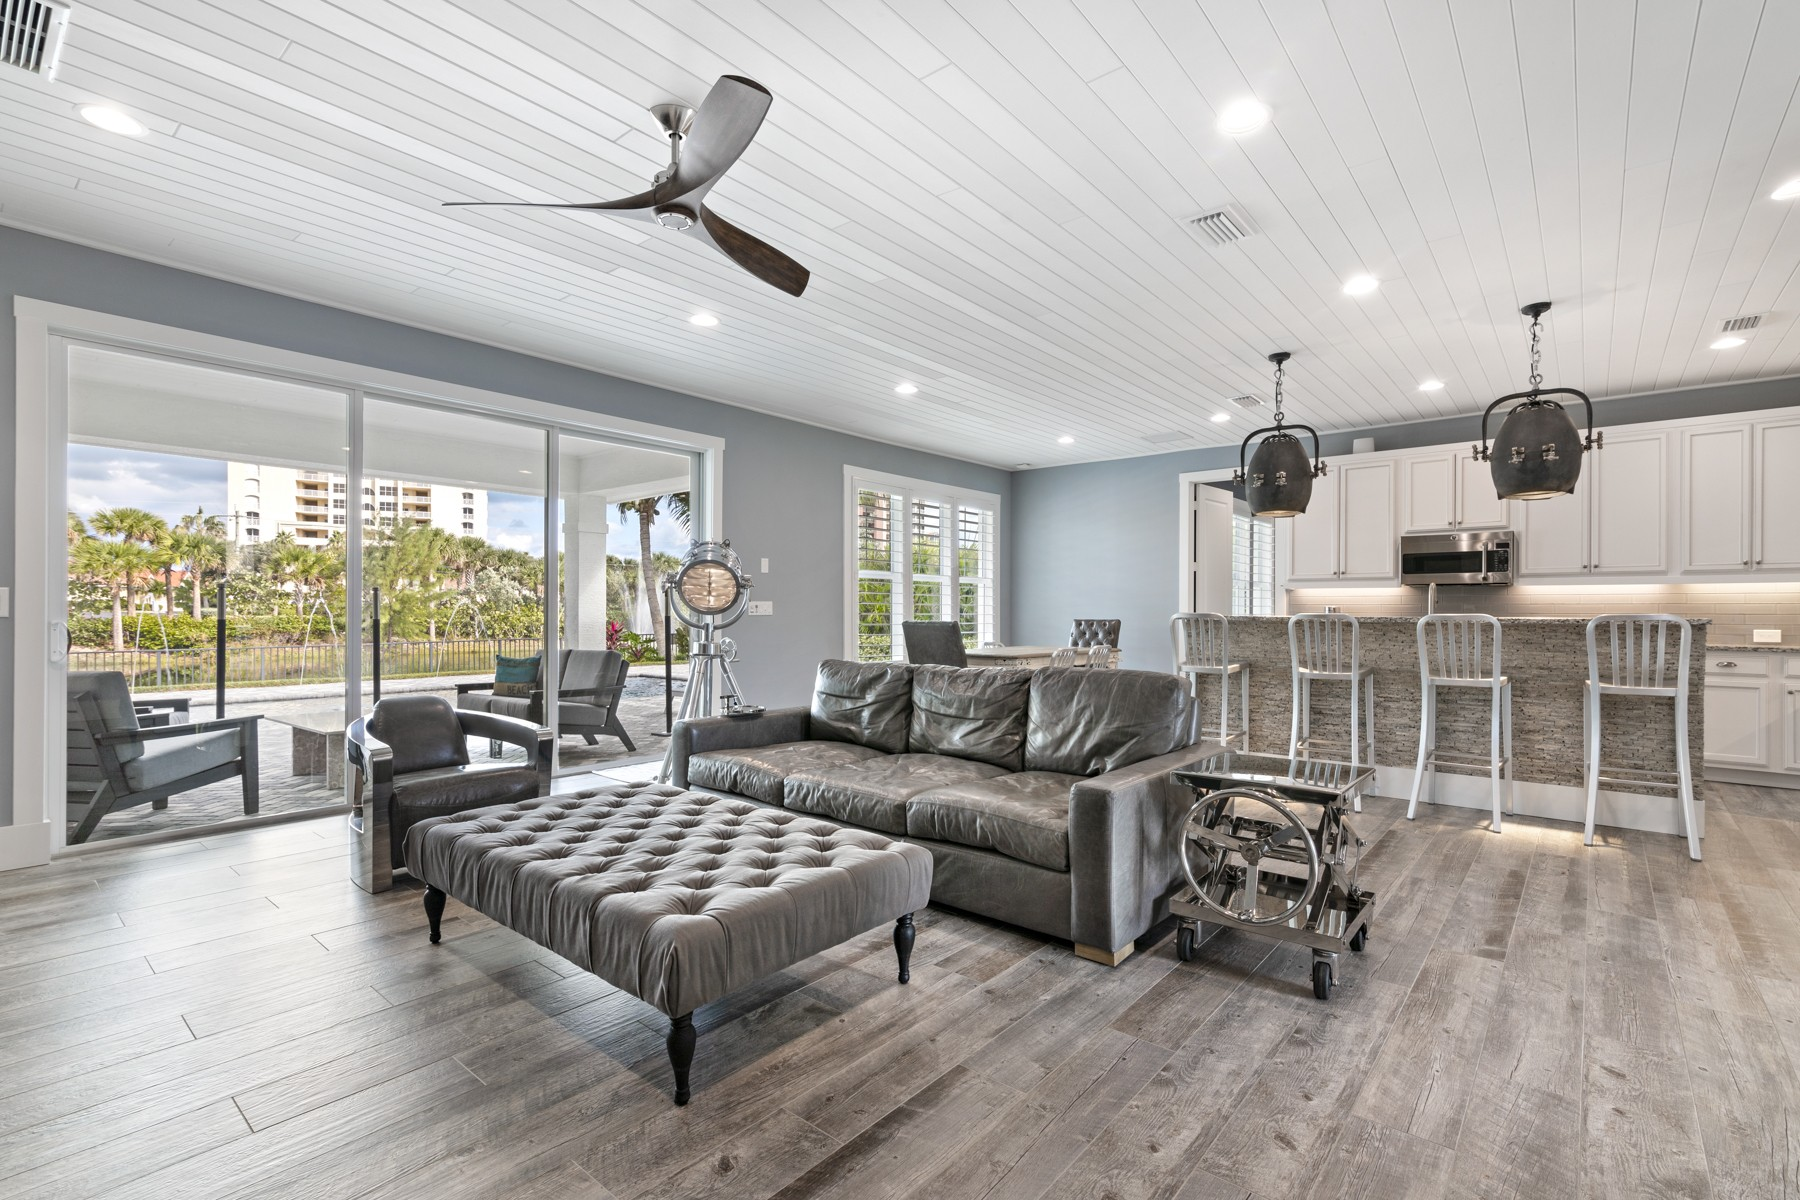 Single Family Homes for Sale at Luxurious Lakefront Home 3918 Duneside Drive Hutchinson Island, Florida 34949 United States